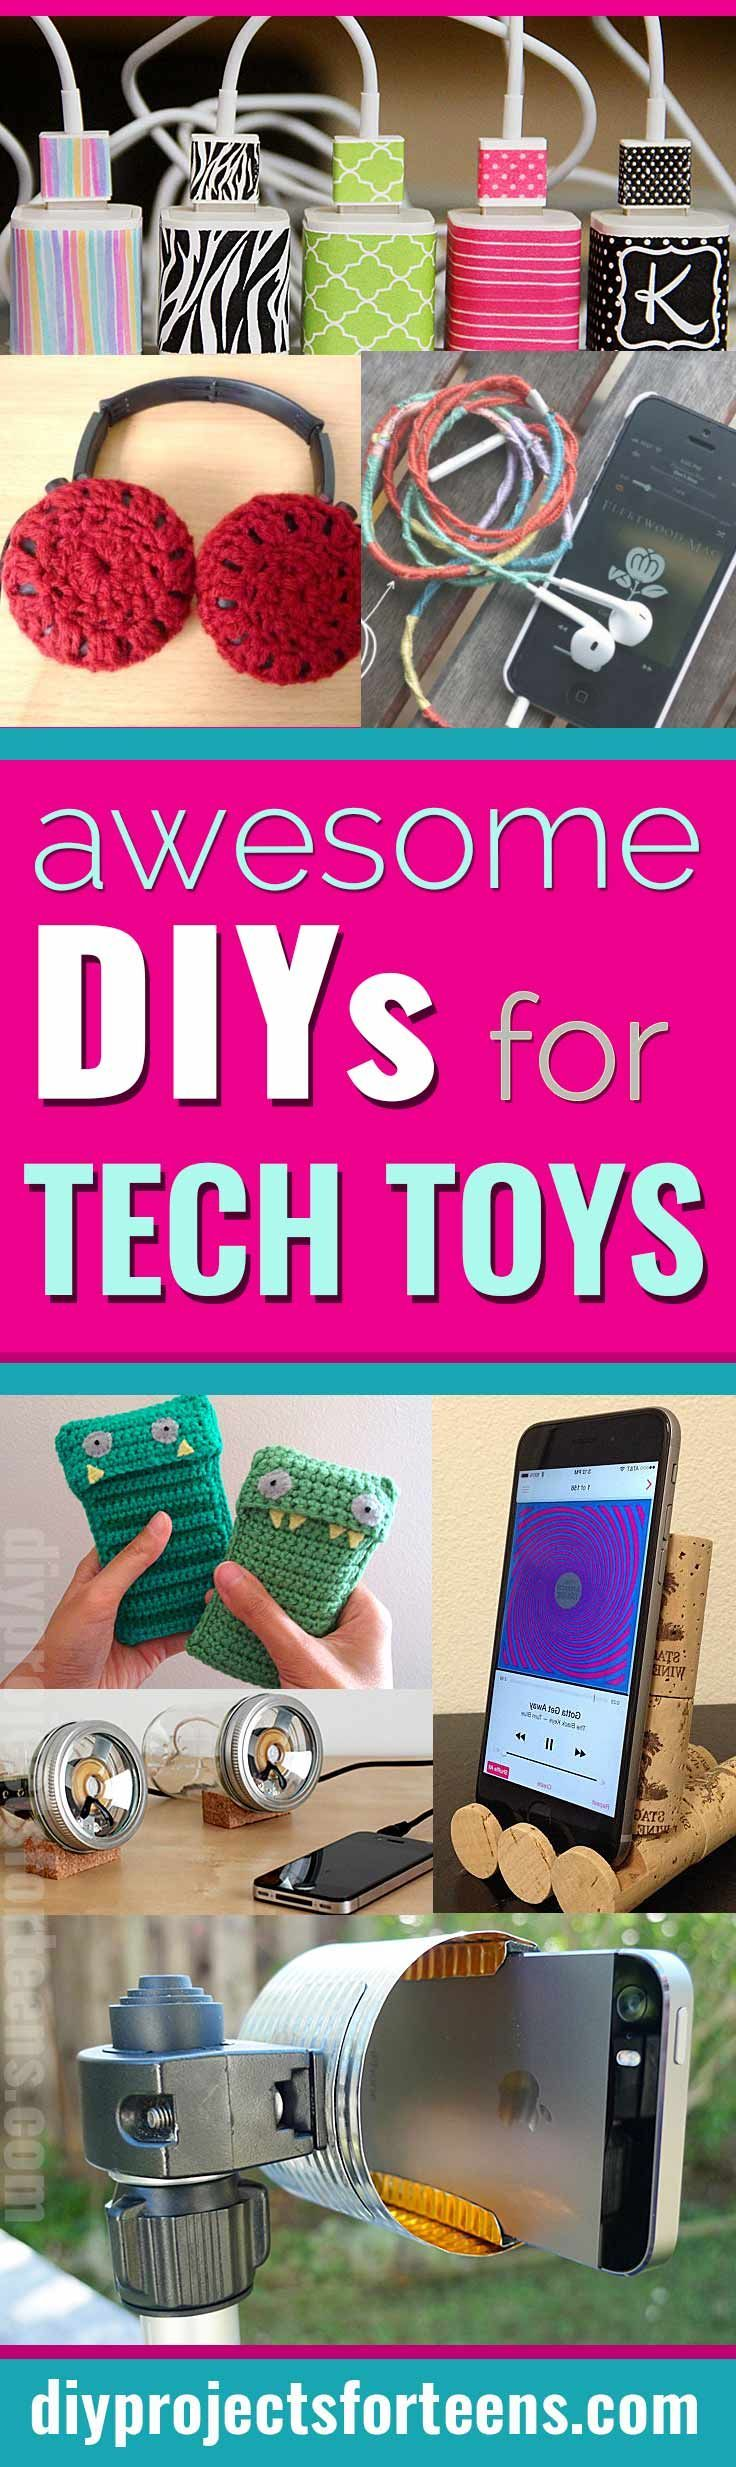 Awesome diys for your tech toys tablet phone ipad tablet and fun